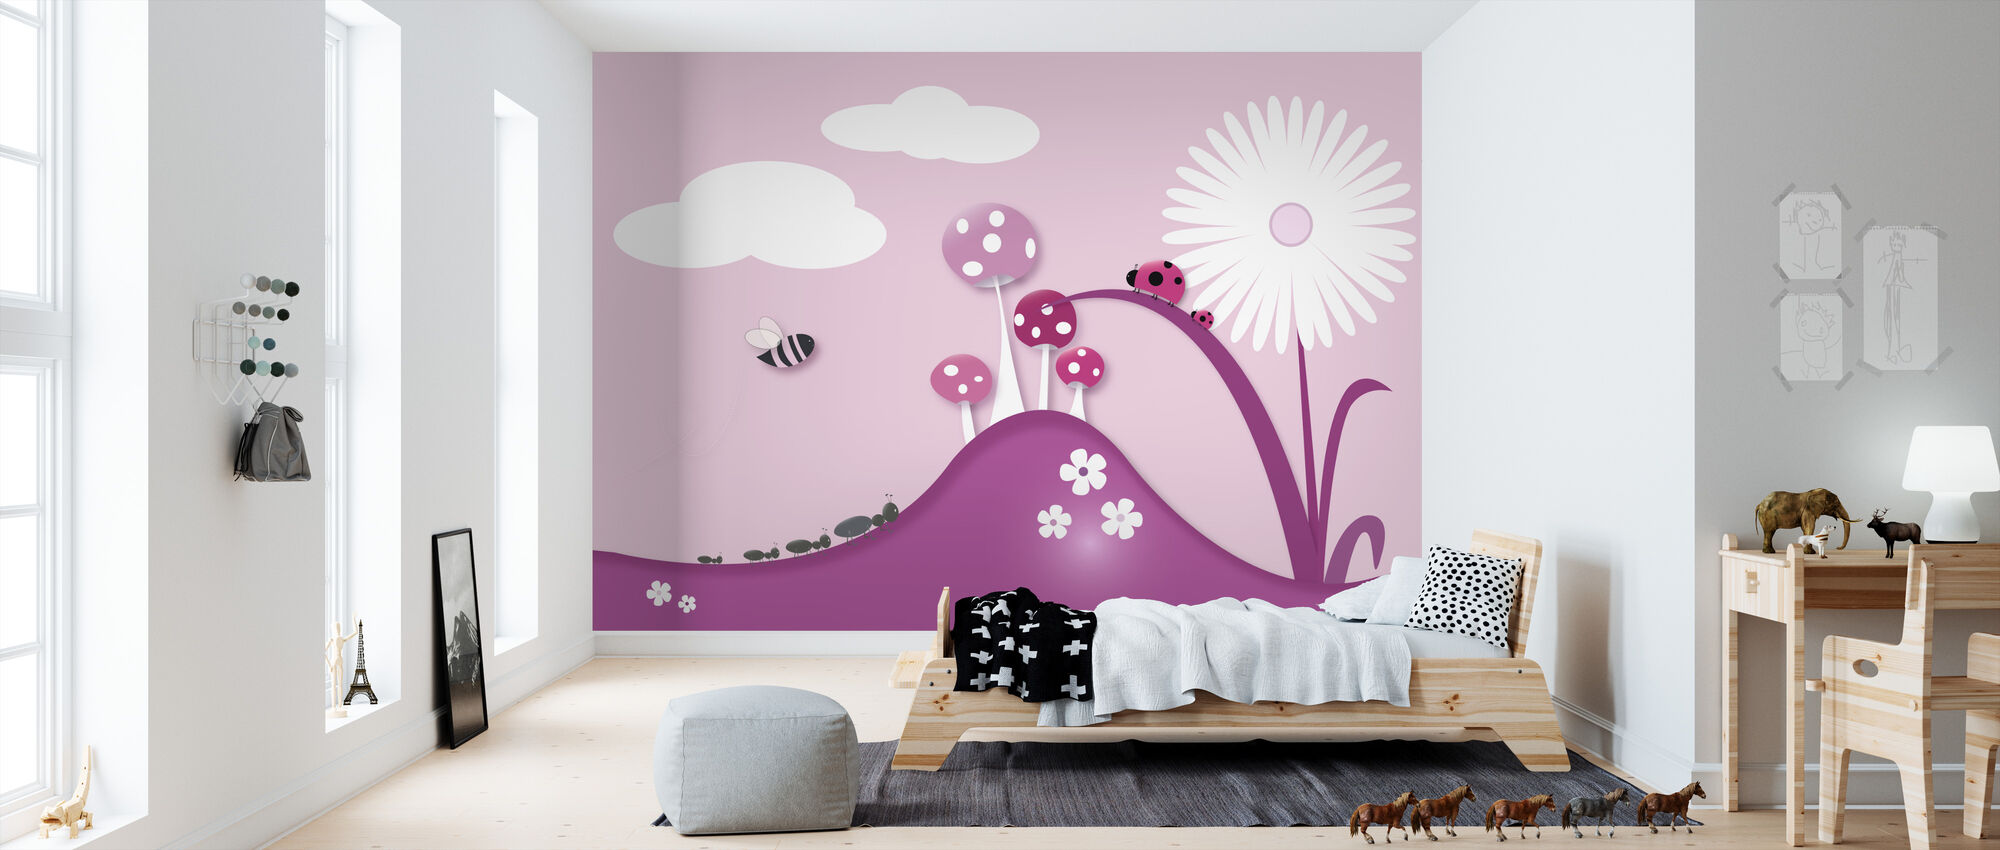 A Bugs World - Pink - Wallpaper - Kids Room